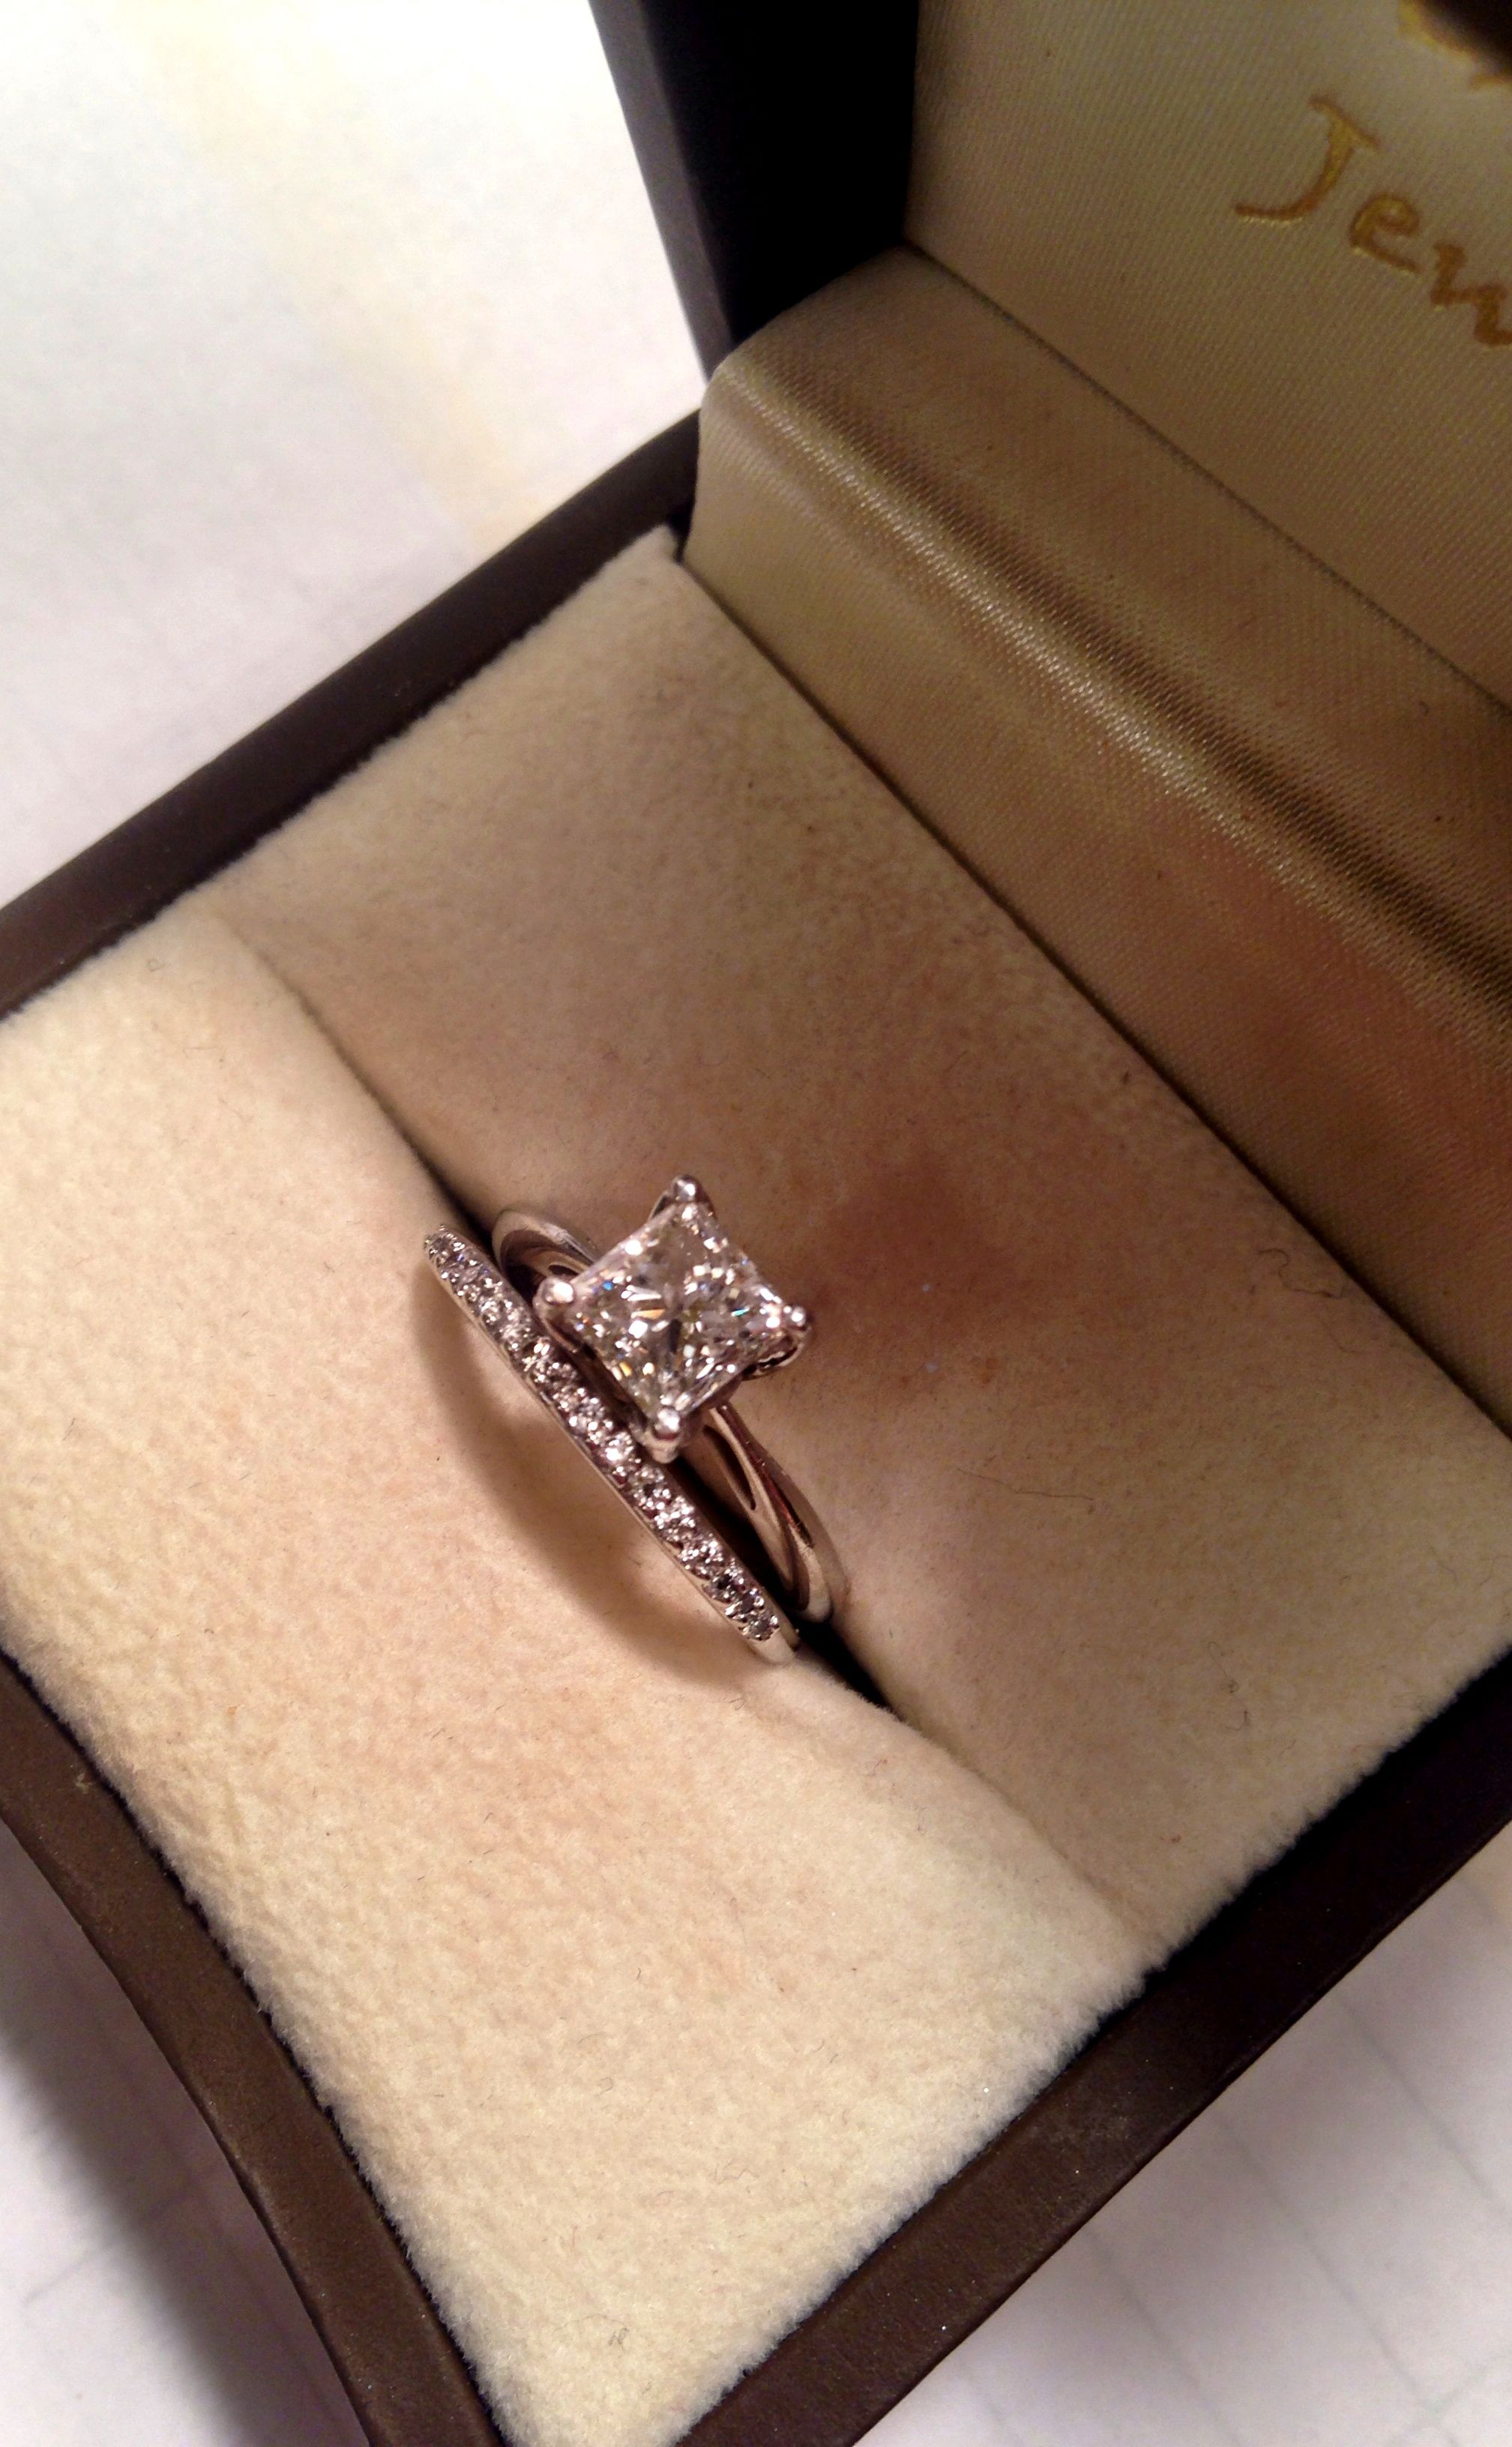 Cool Solitaire engagement ring princess cut diamond wedding band it us what